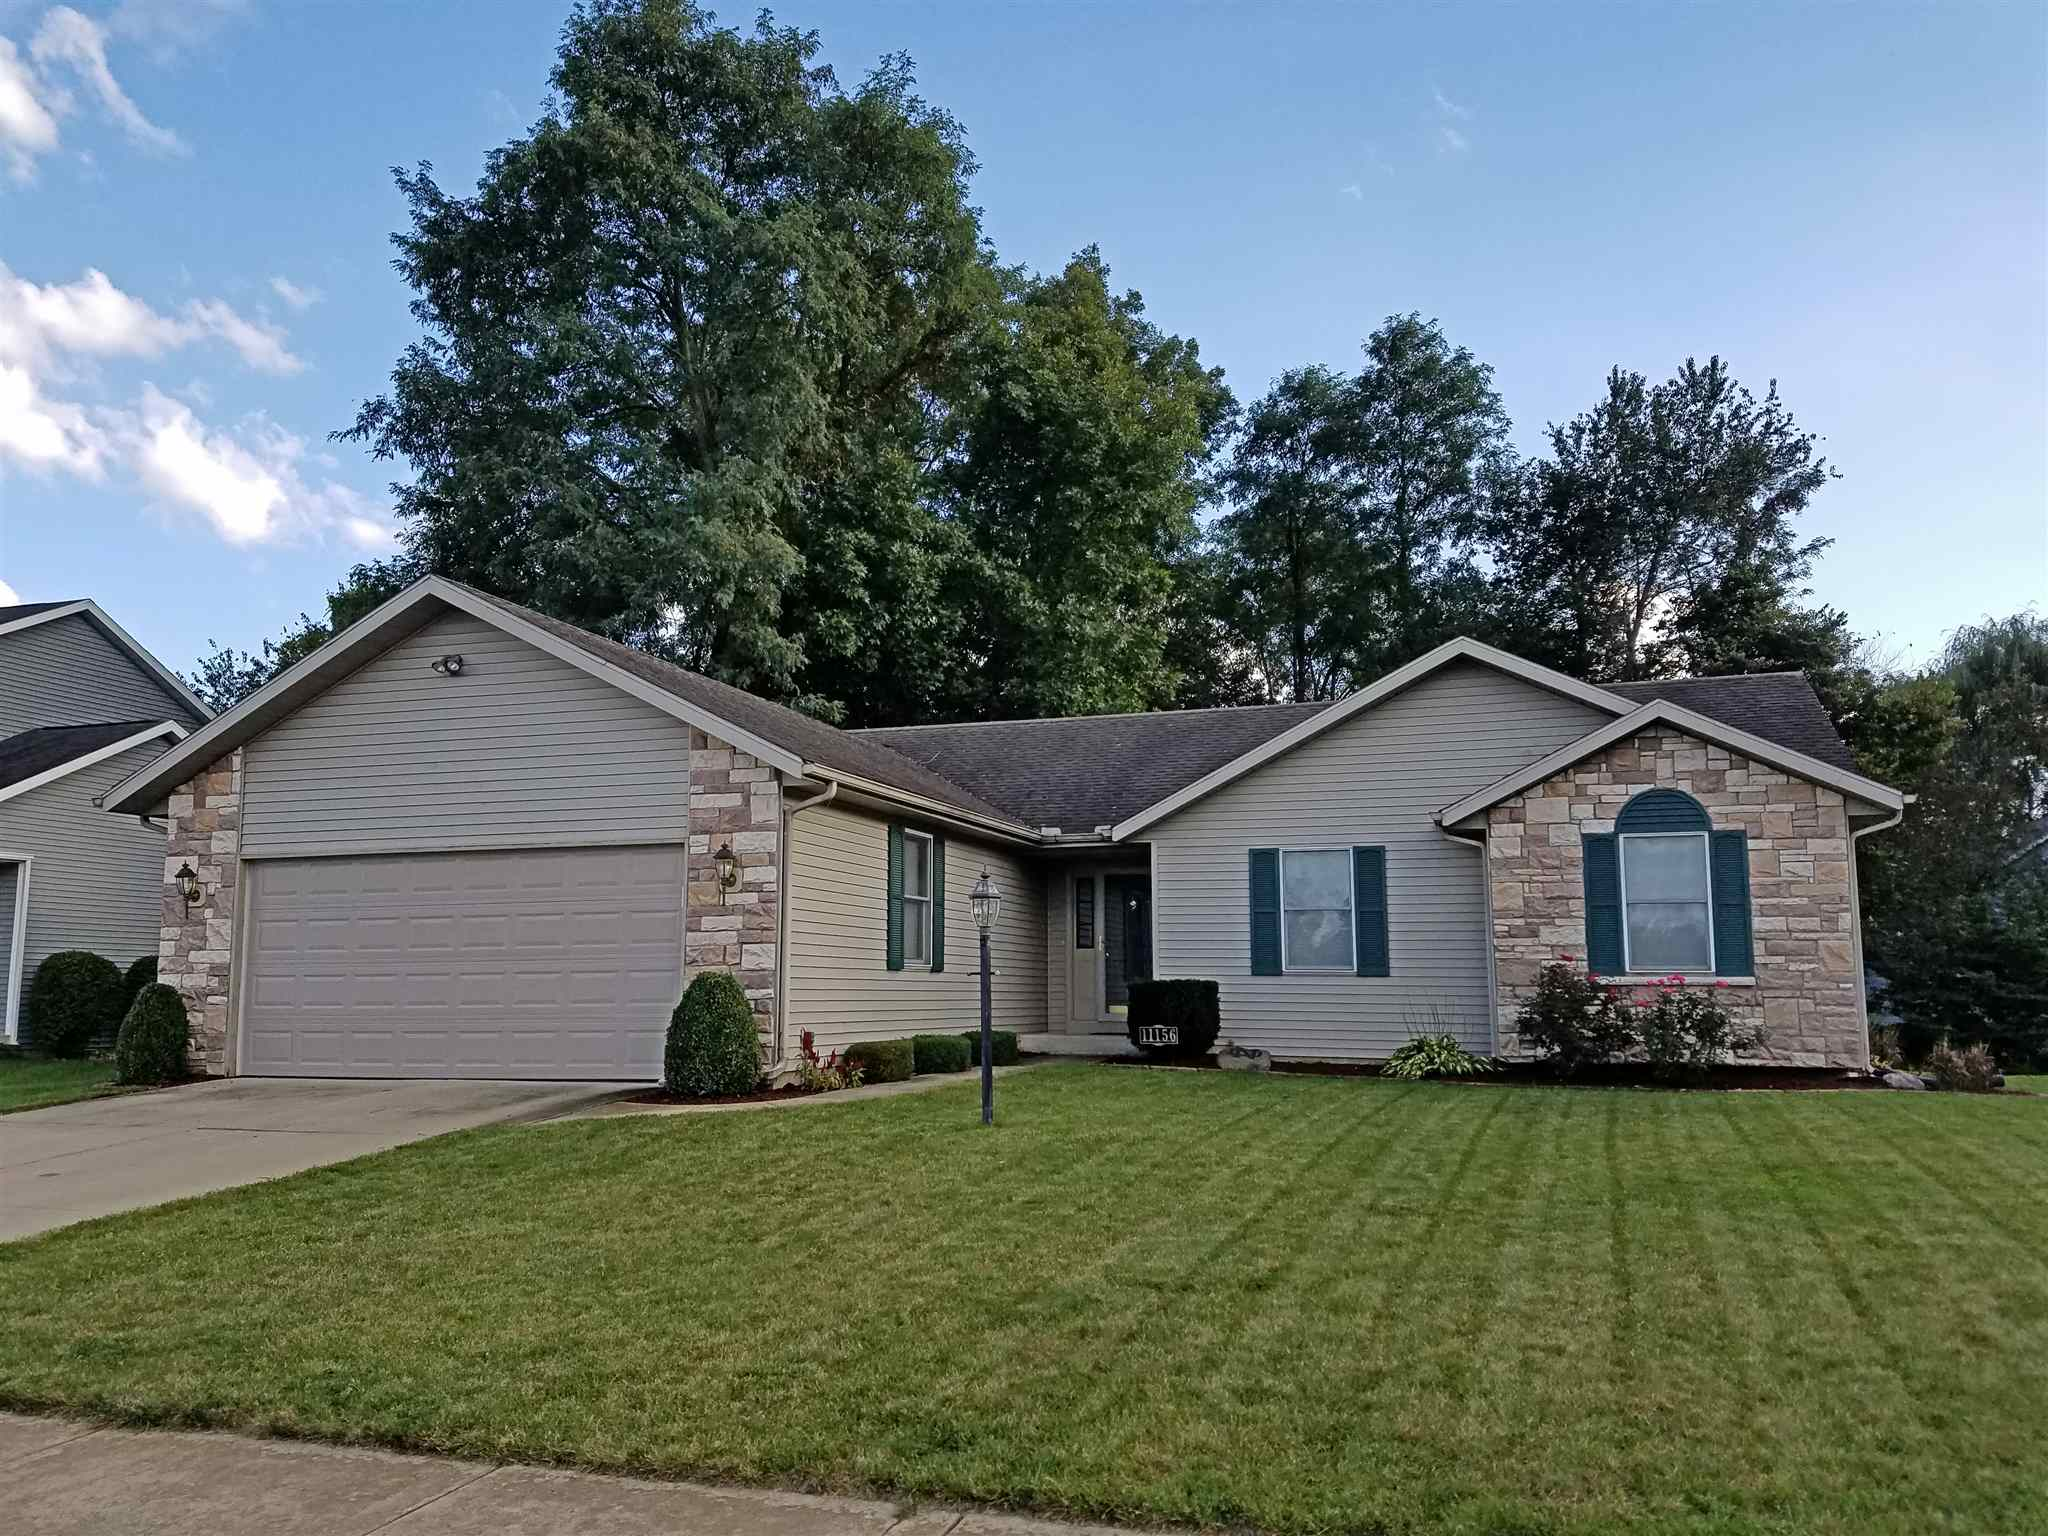 11156 Golden Pheasant Osceola, IN 46561